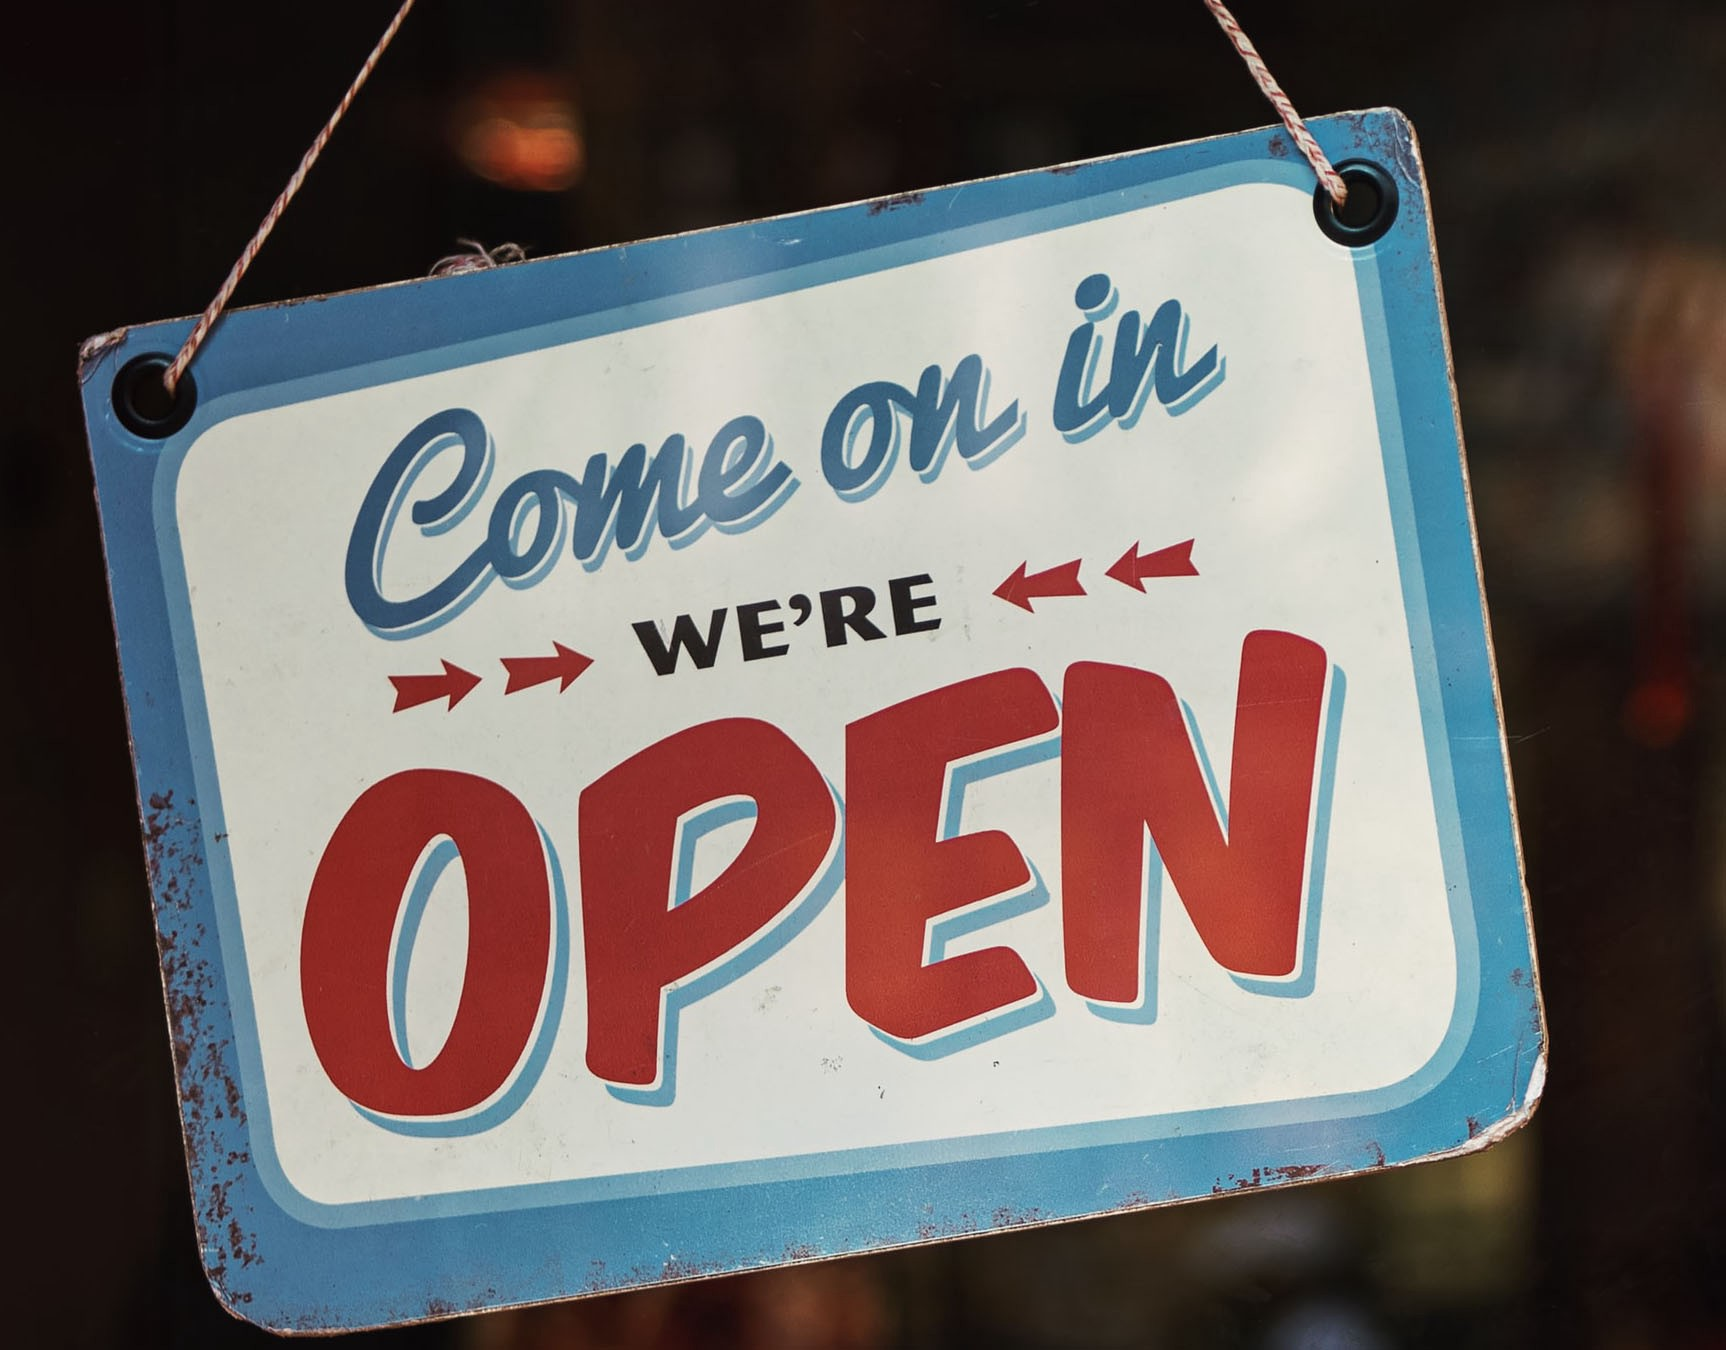 Come on in. We are open.